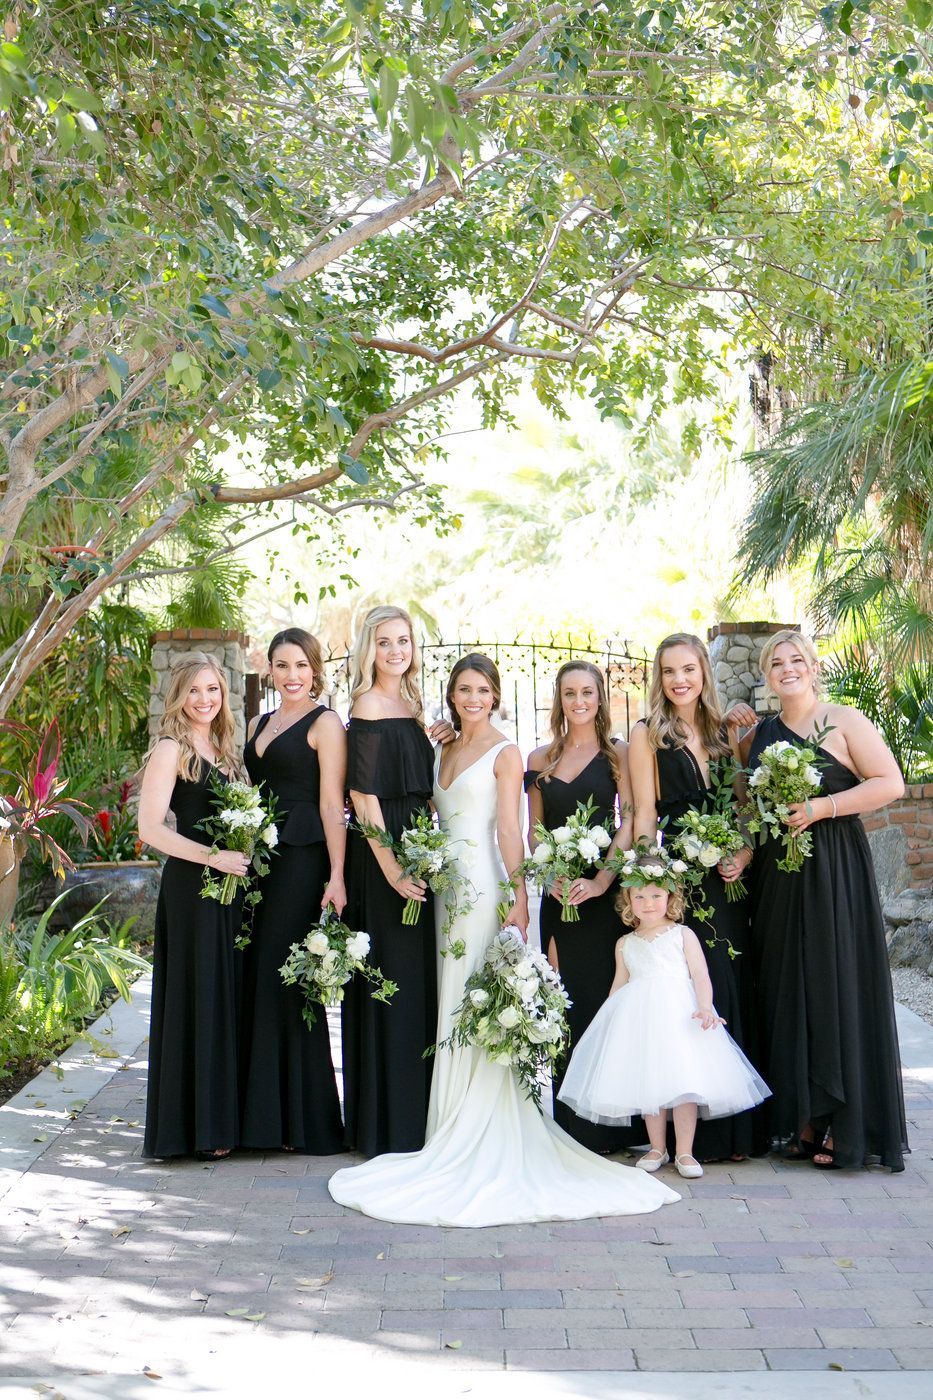 Black Bridesmaid Dresses Palm Springs Wedding At Colony 29 In Southern California Leah Ma Temecula Weddings California Wedding Venues Wedding Photographers [ 1400 x 933 Pixel ]